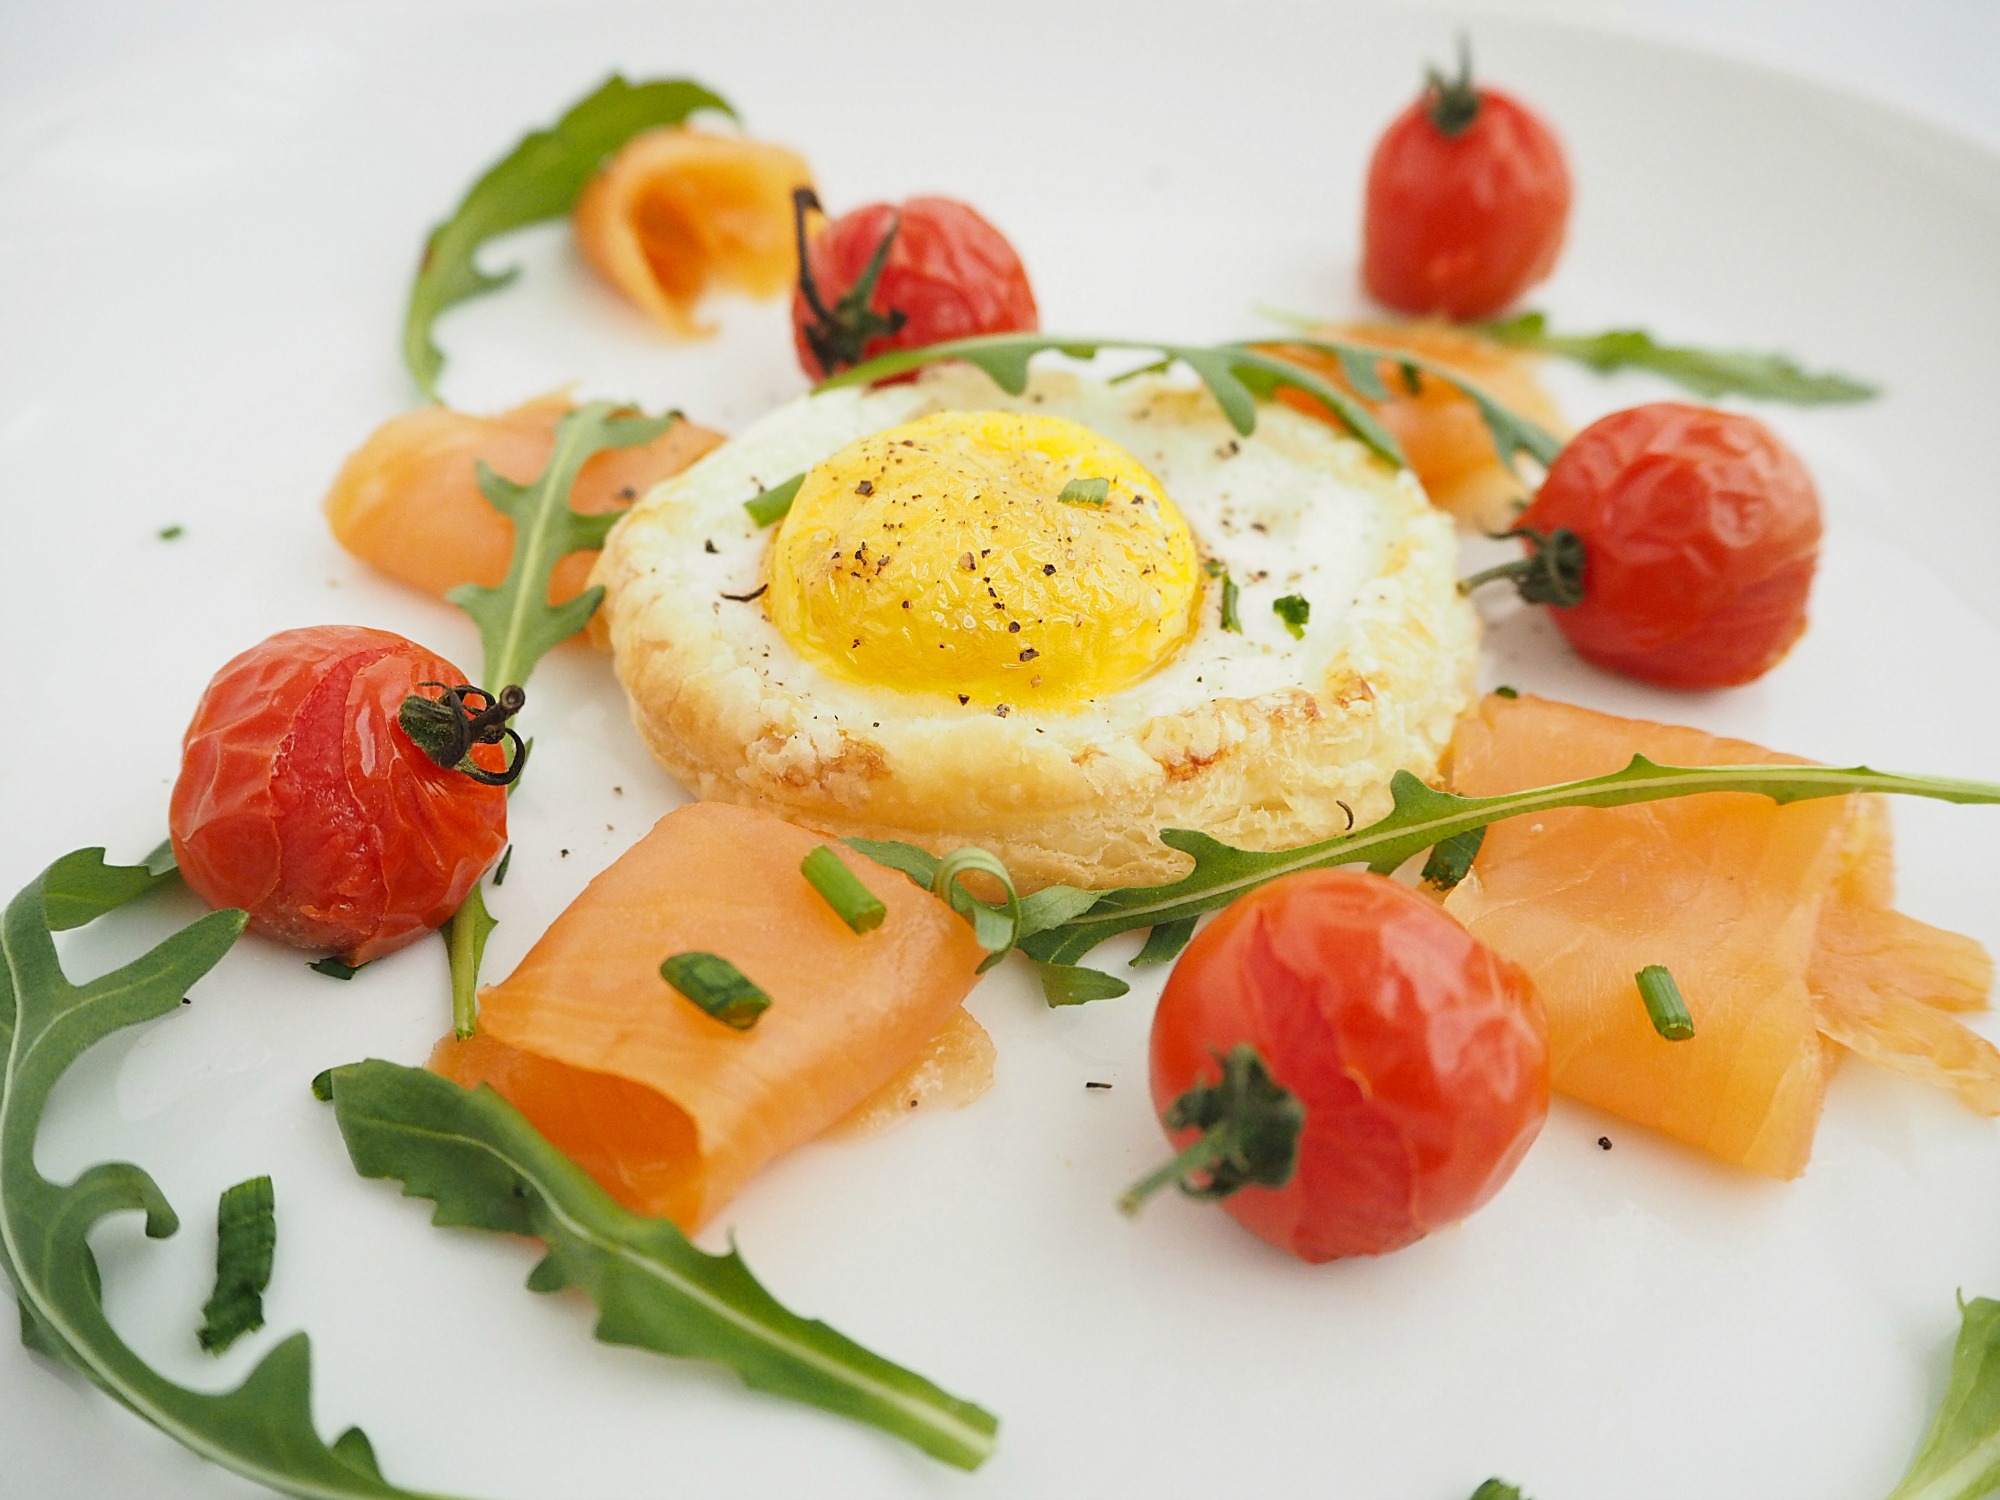 A plate of baked eggs in a cheesy pastry, smoked salmon, rocket and roasted cherry tomatoes